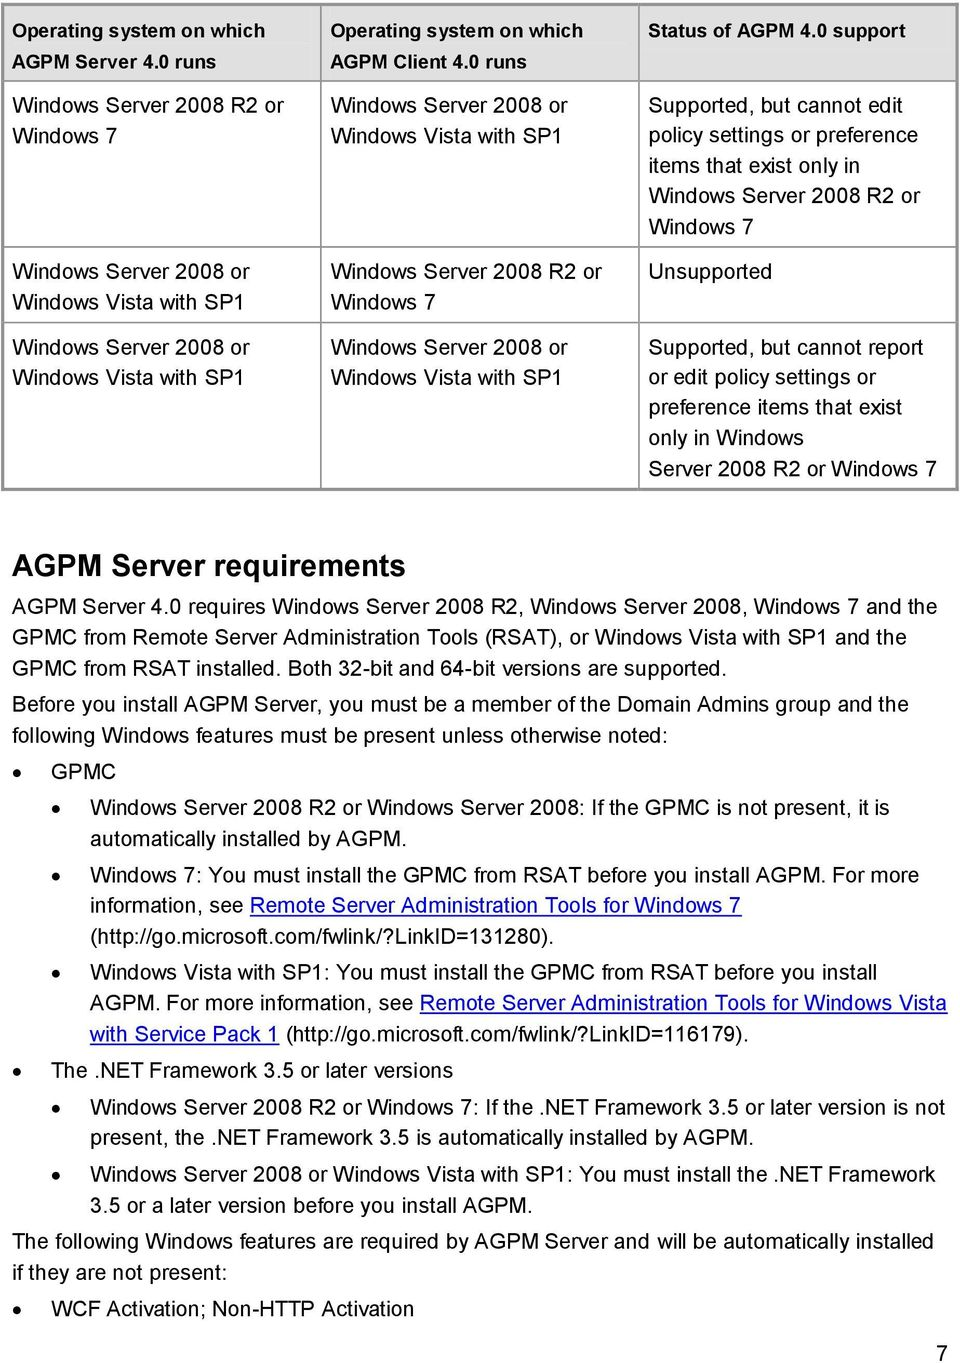 0 runs Windows Server 2008 or Windows Vista with SP1 Windows Server 2008 R2 or Windows 7 Windows Server 2008 or Windows Vista with SP1 Status of AGPM 4.